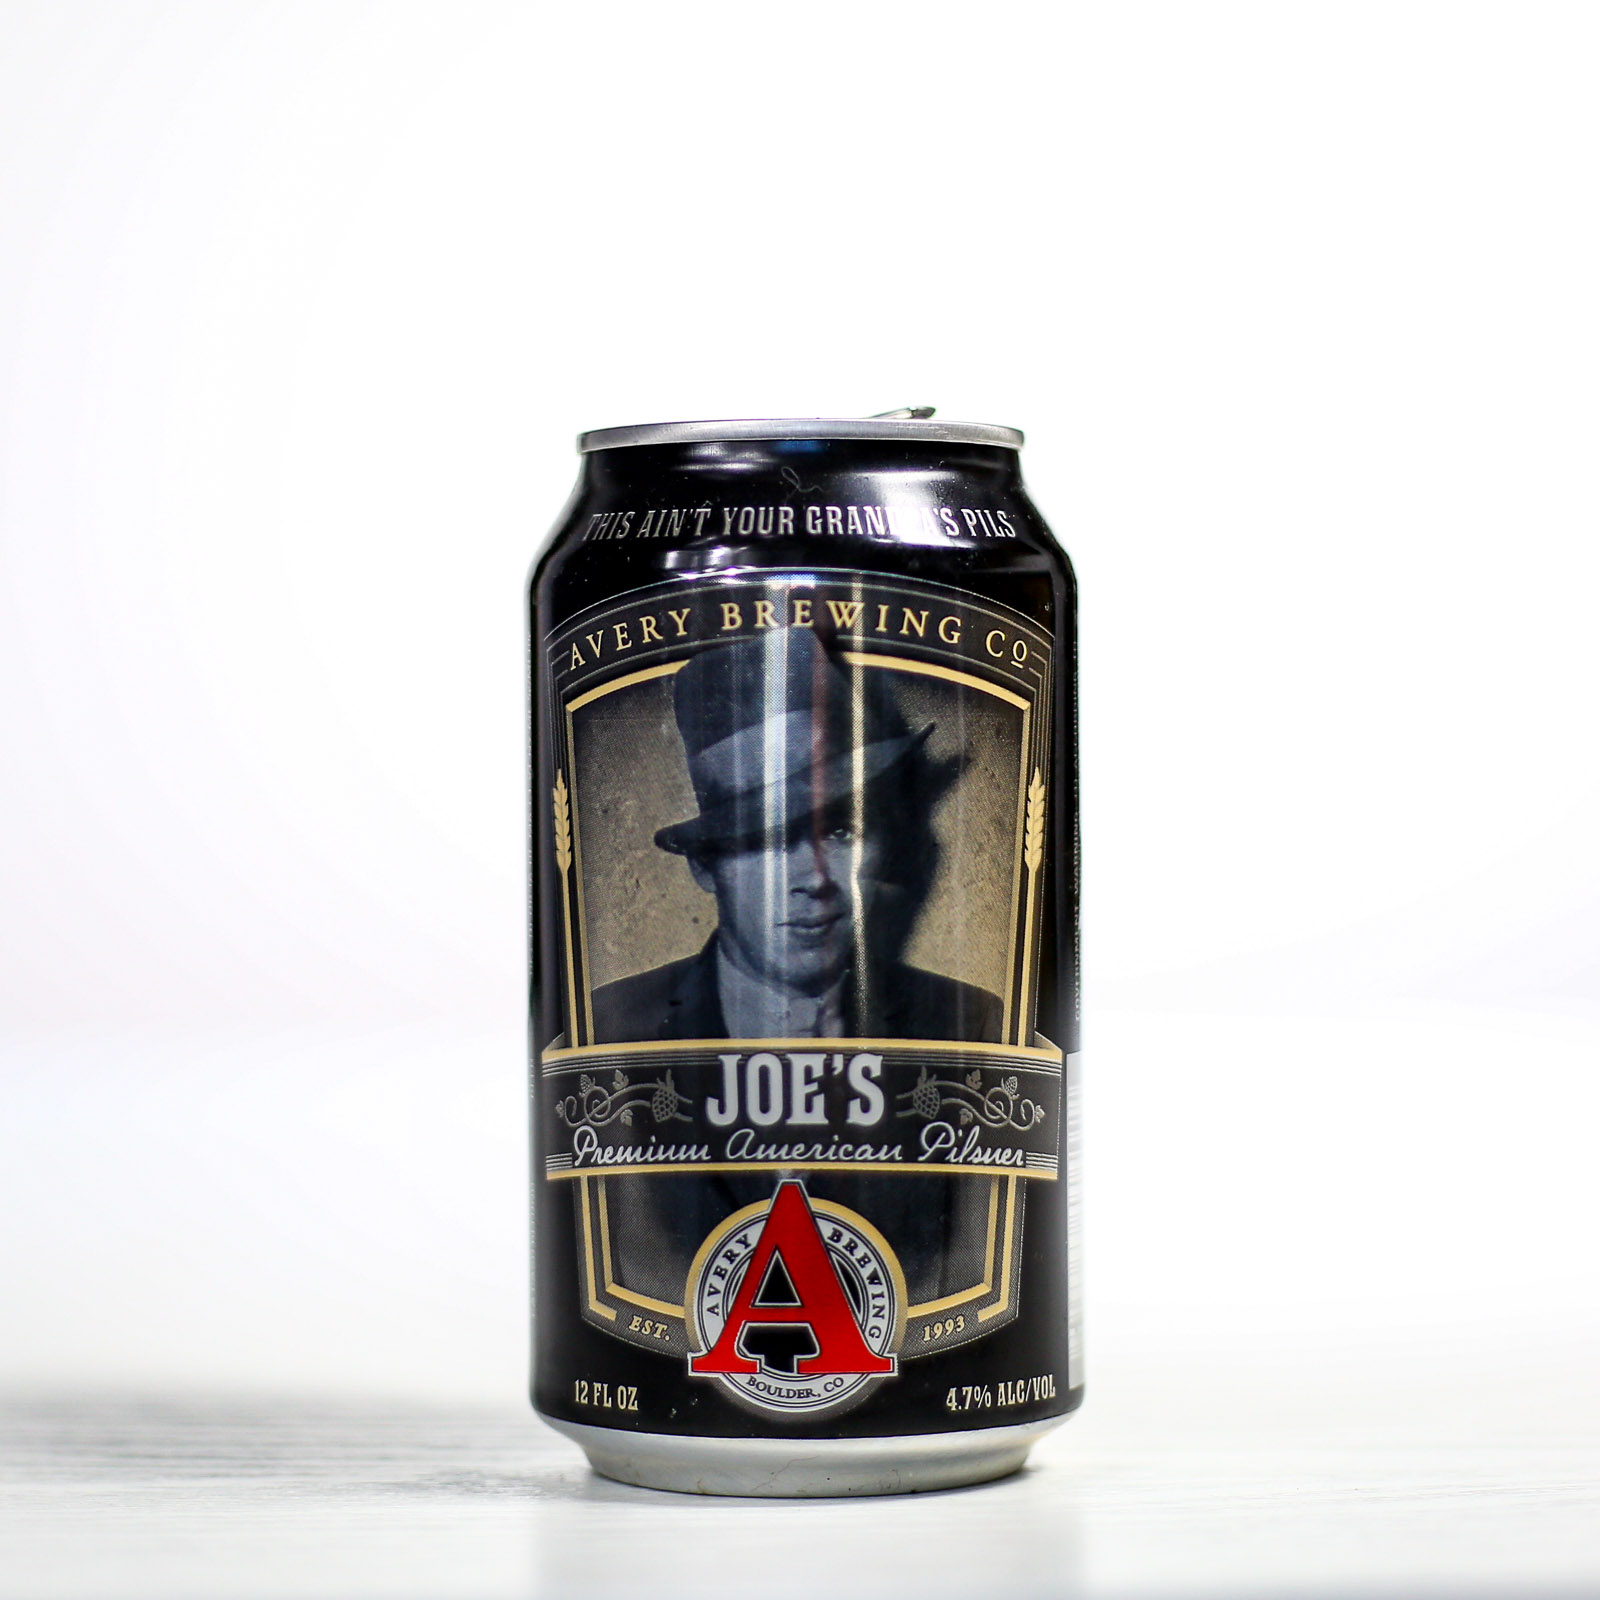 Avery Brewing Co. - Joe's Premium American Pilsner